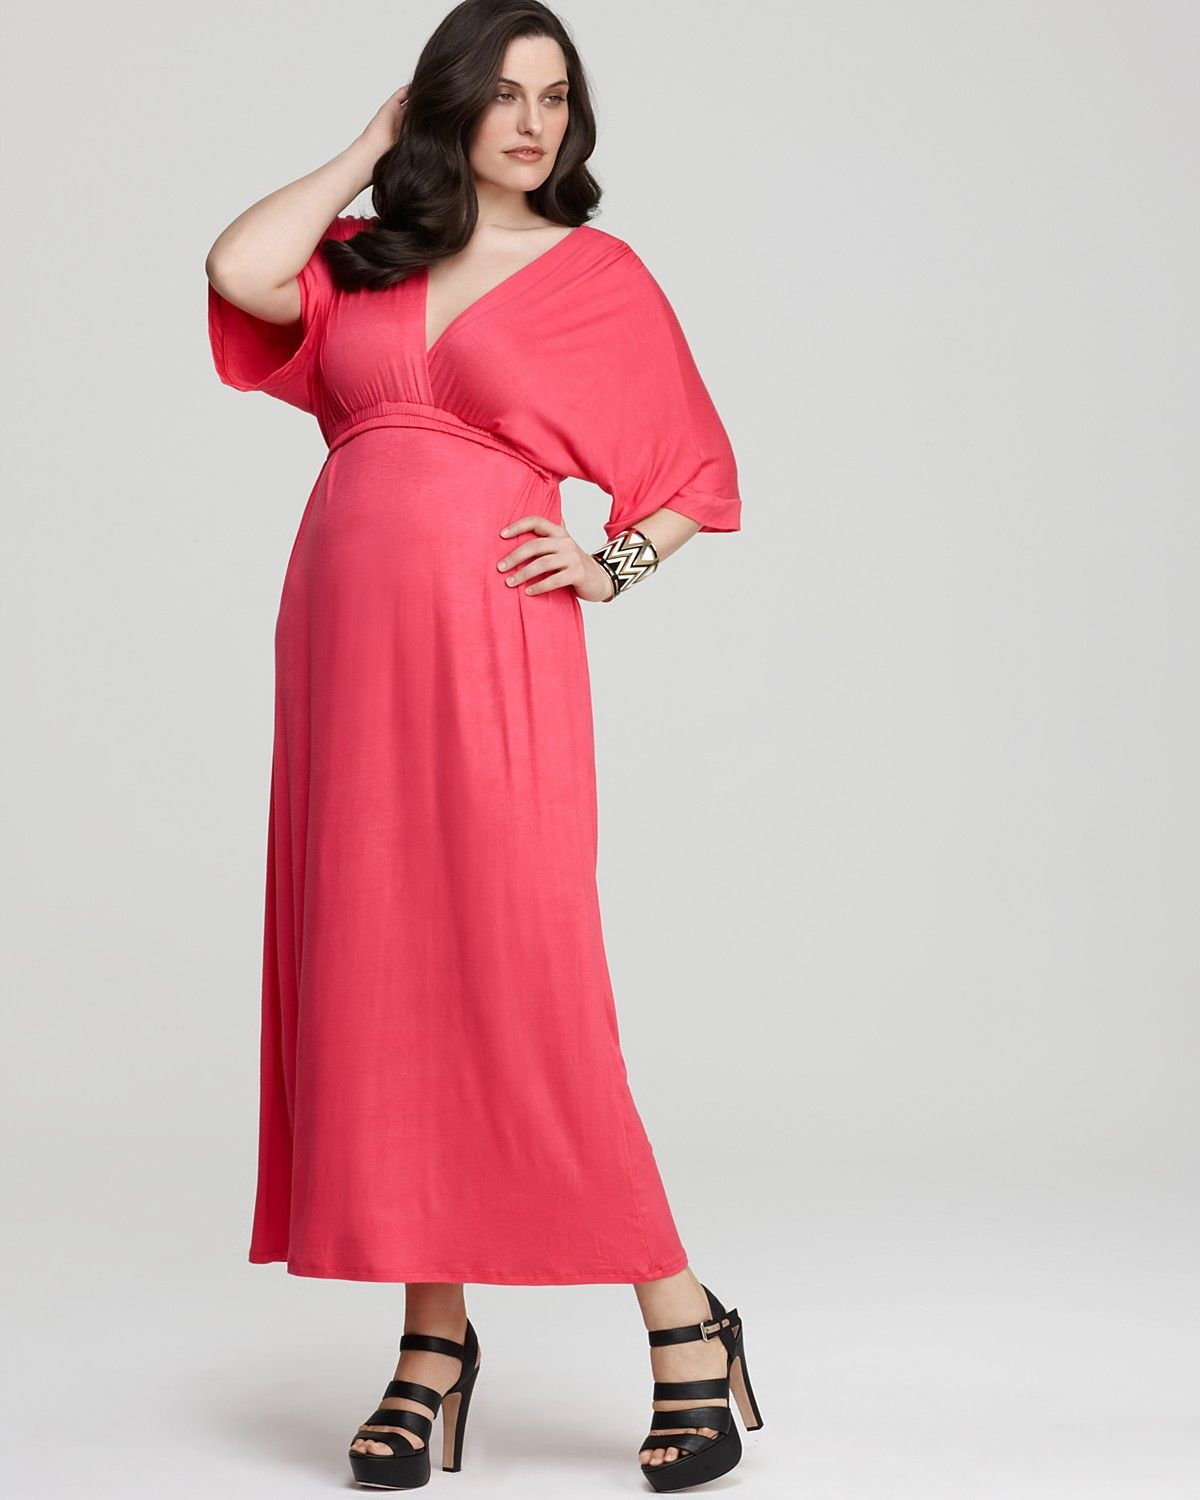 pink plus size dress with sleeves images - dresses design ideas